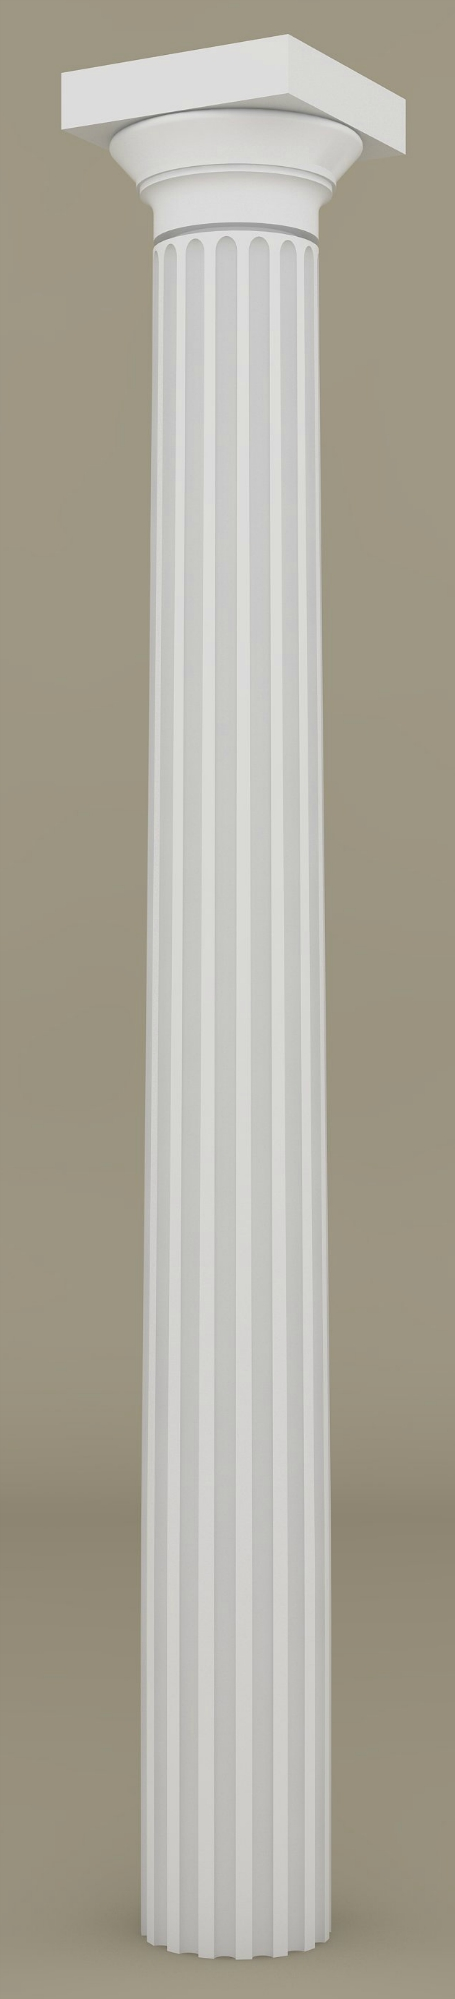 Architectural Wood Column Greek Doric Design 130